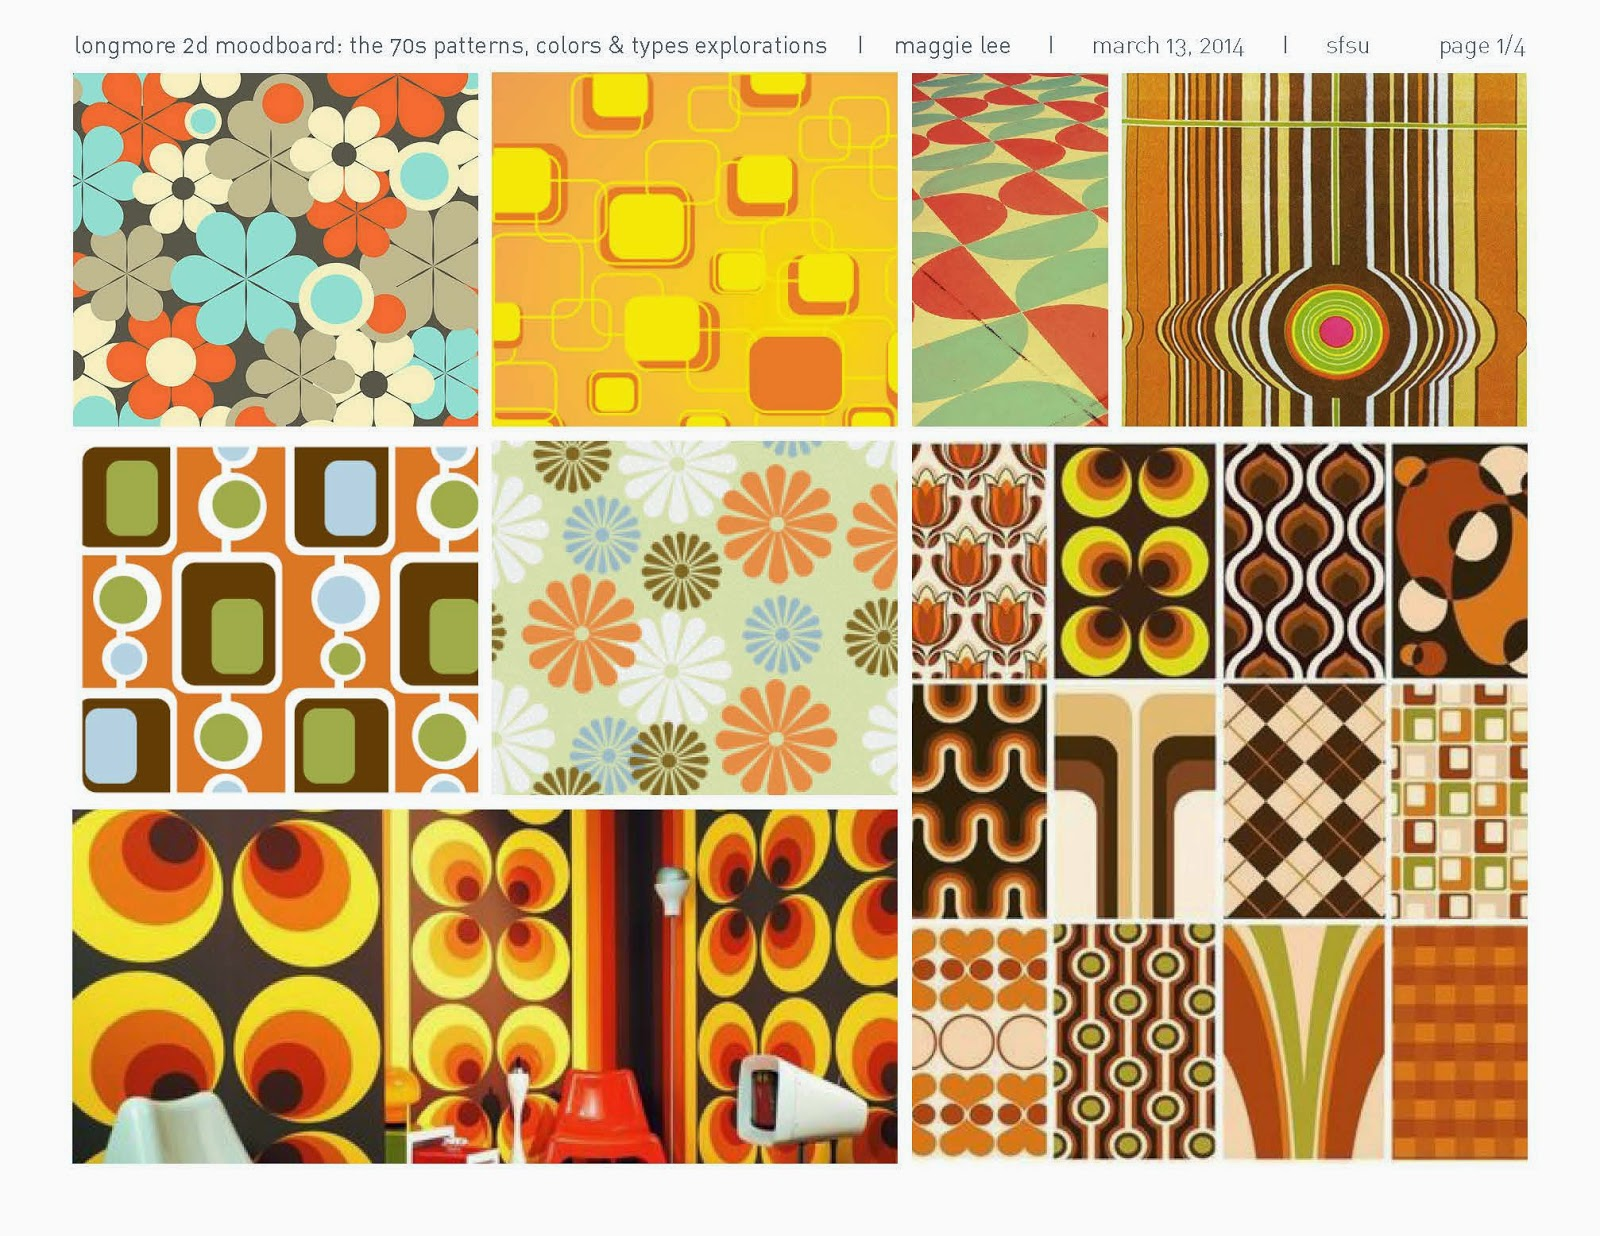 1970's wallpapers, patterns, and prints in orange, yellow, blue, green for inspiration